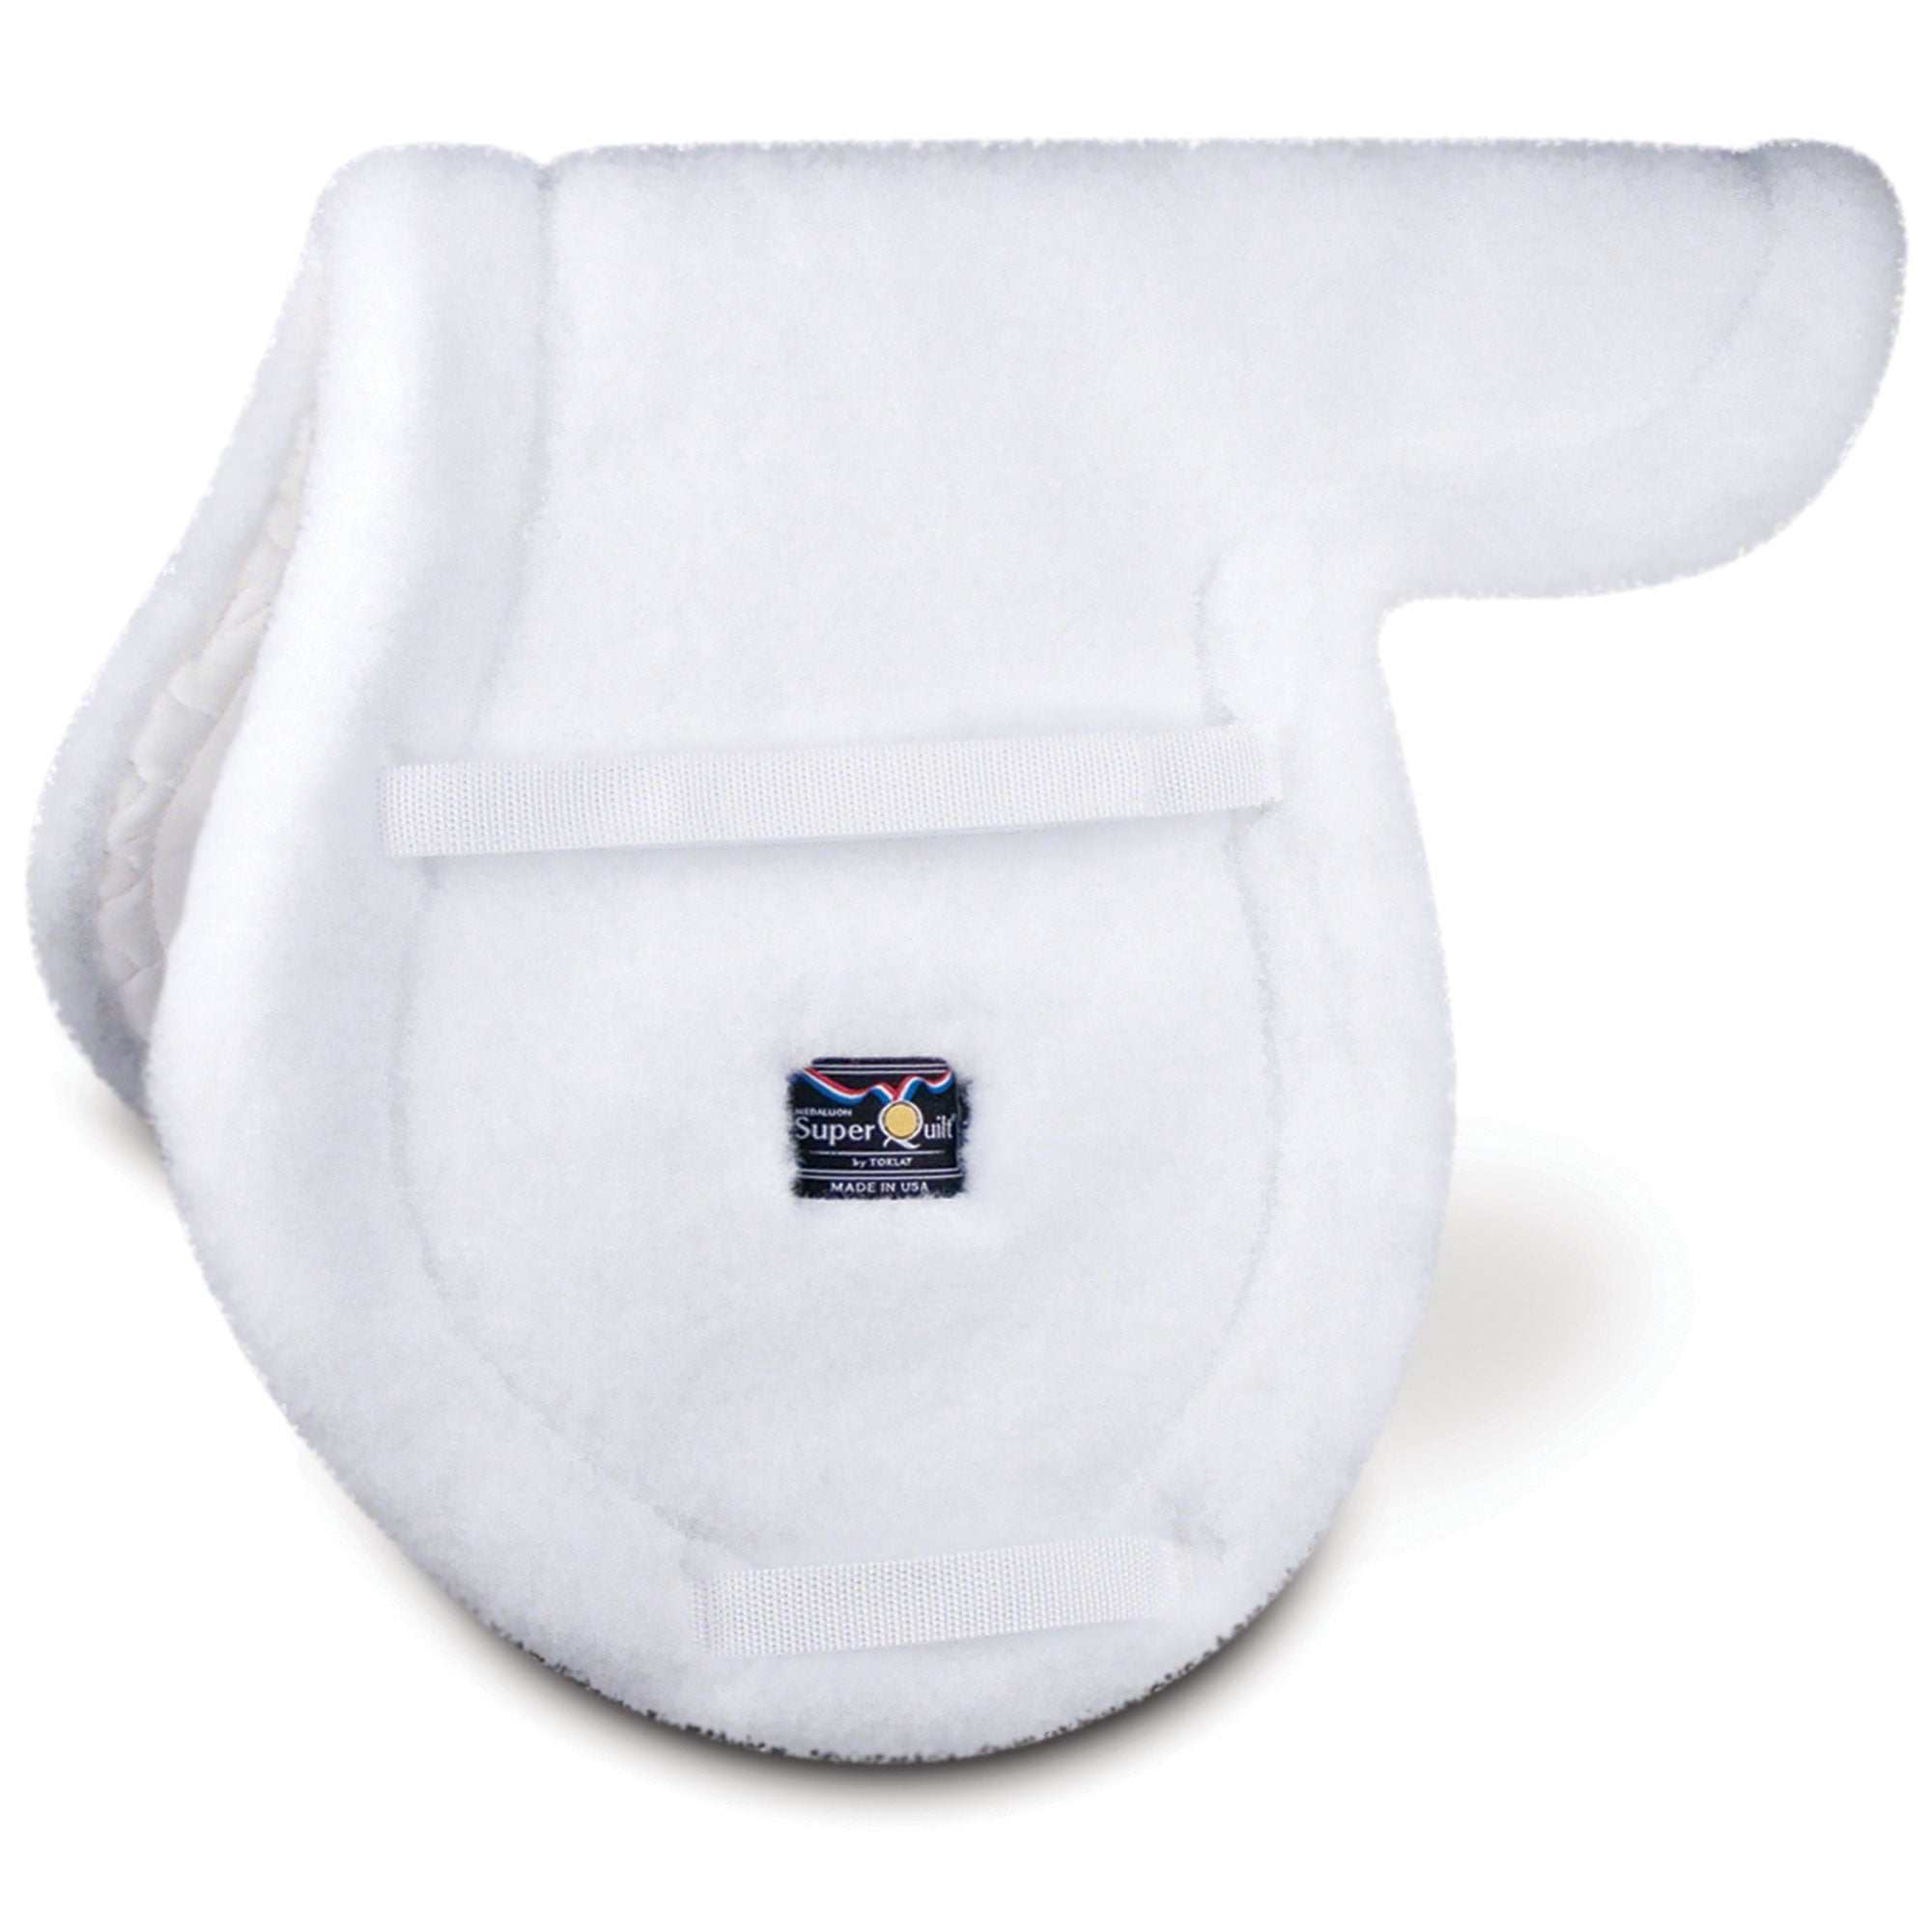 SuperQuilt Close Contact Pad Tack - English Tack & Equipment - English Tack Toklat Teskeys